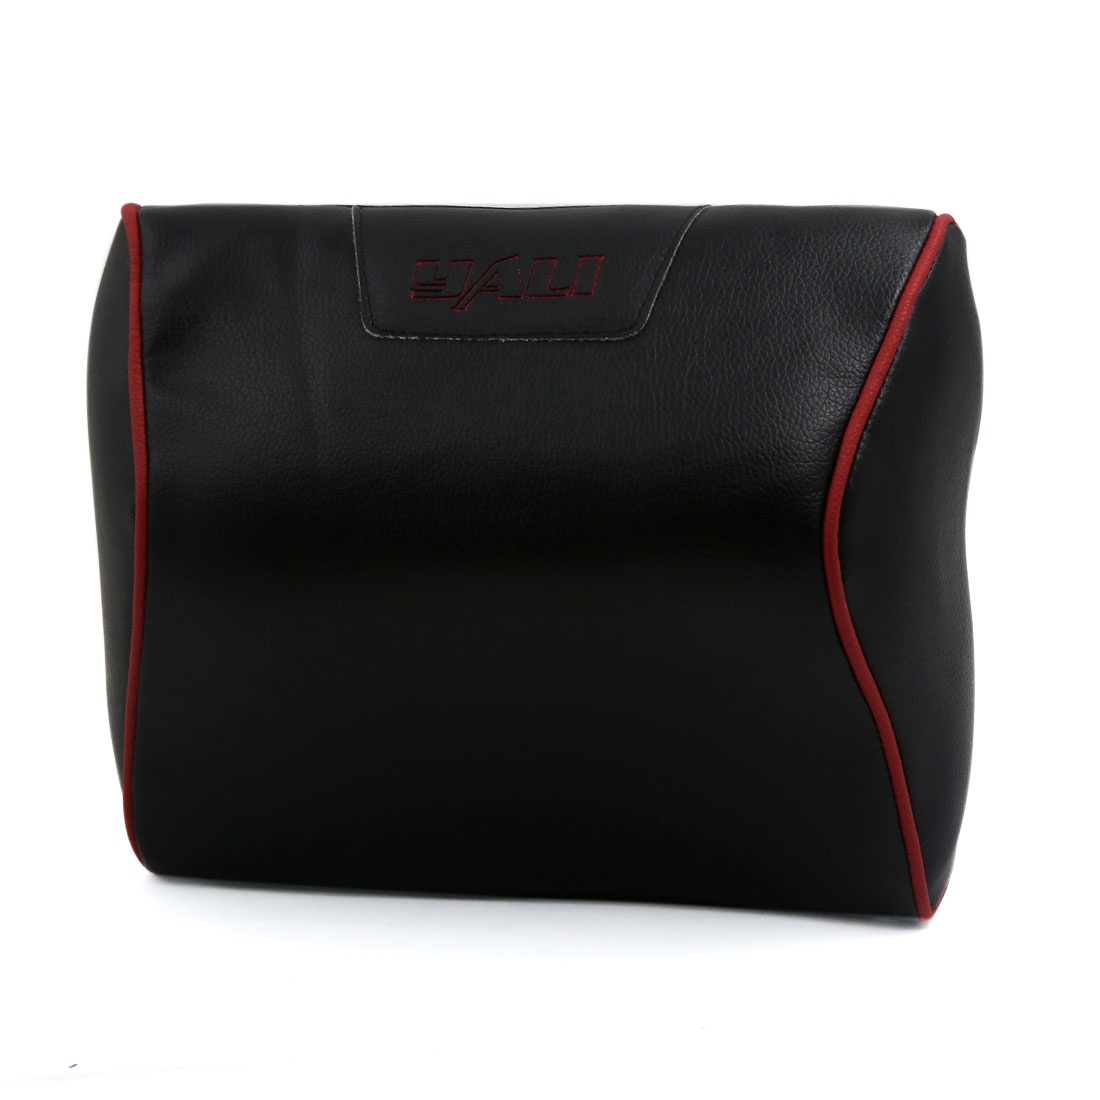 Convex Shaped Faux Leather Elastic Band Pillow Neck Rest Support Cushion Black for Car